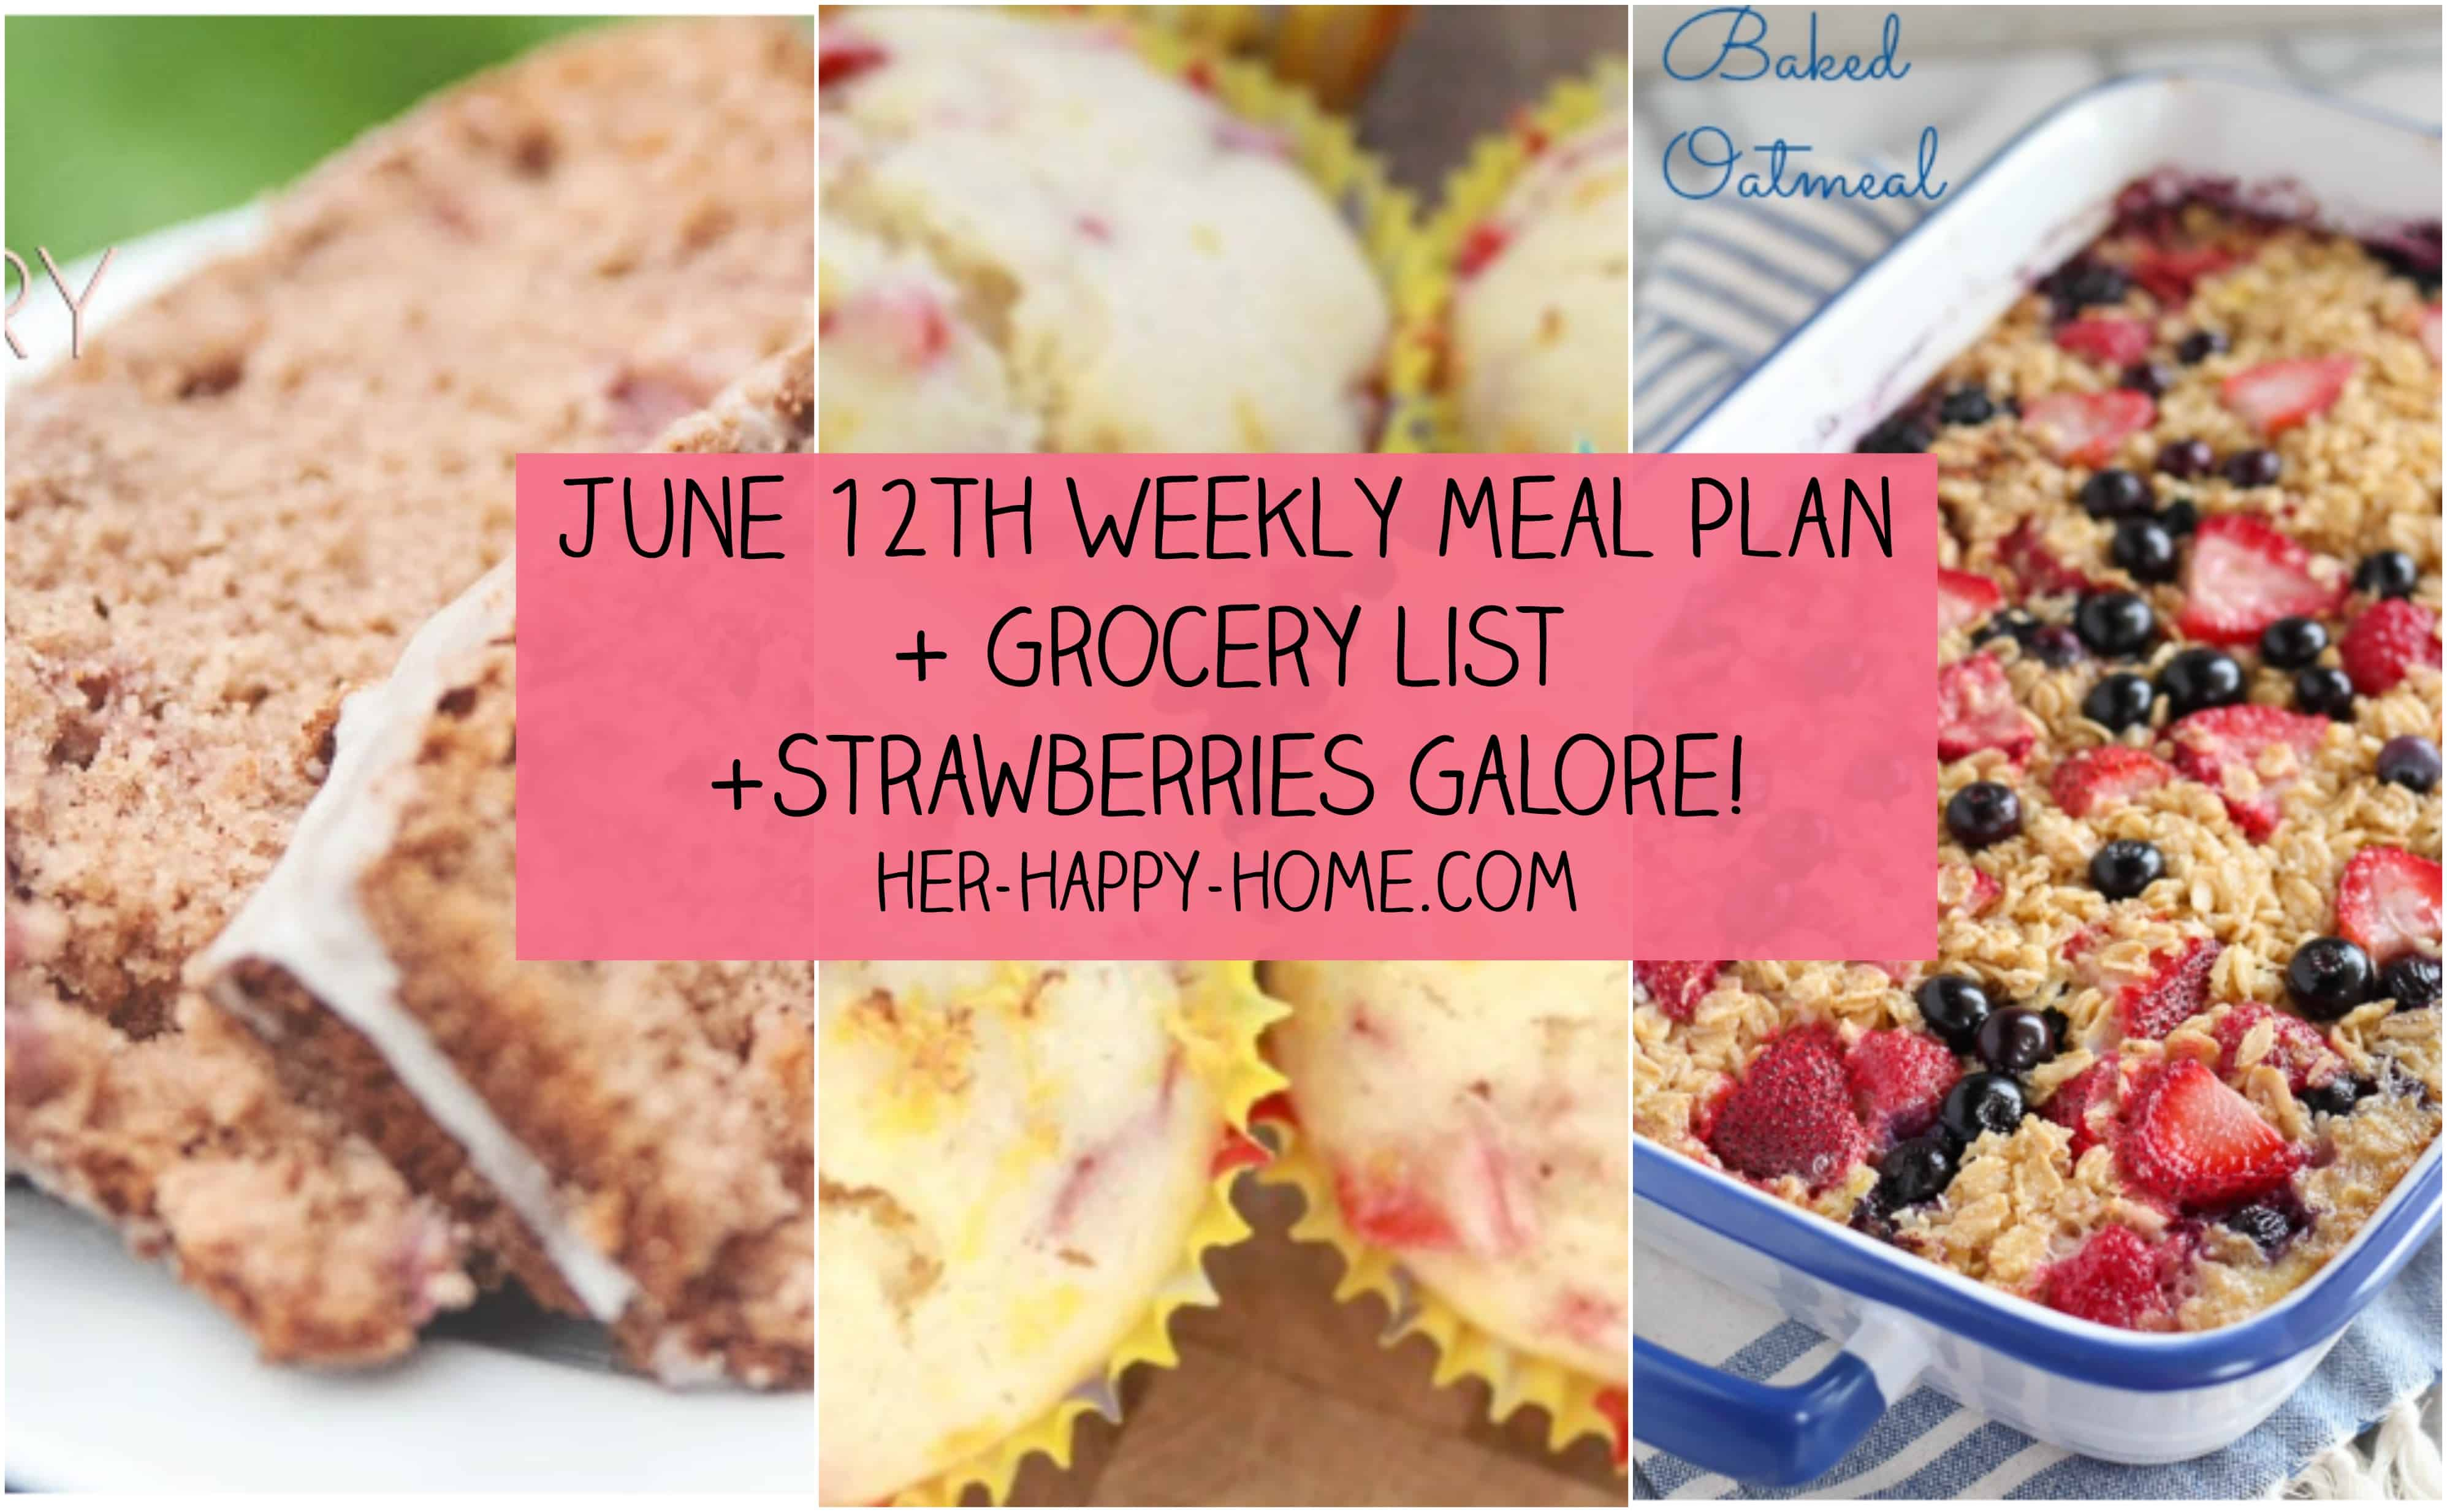 June 12th Meal Plan + Grocery Lists + Strawberries Galore!